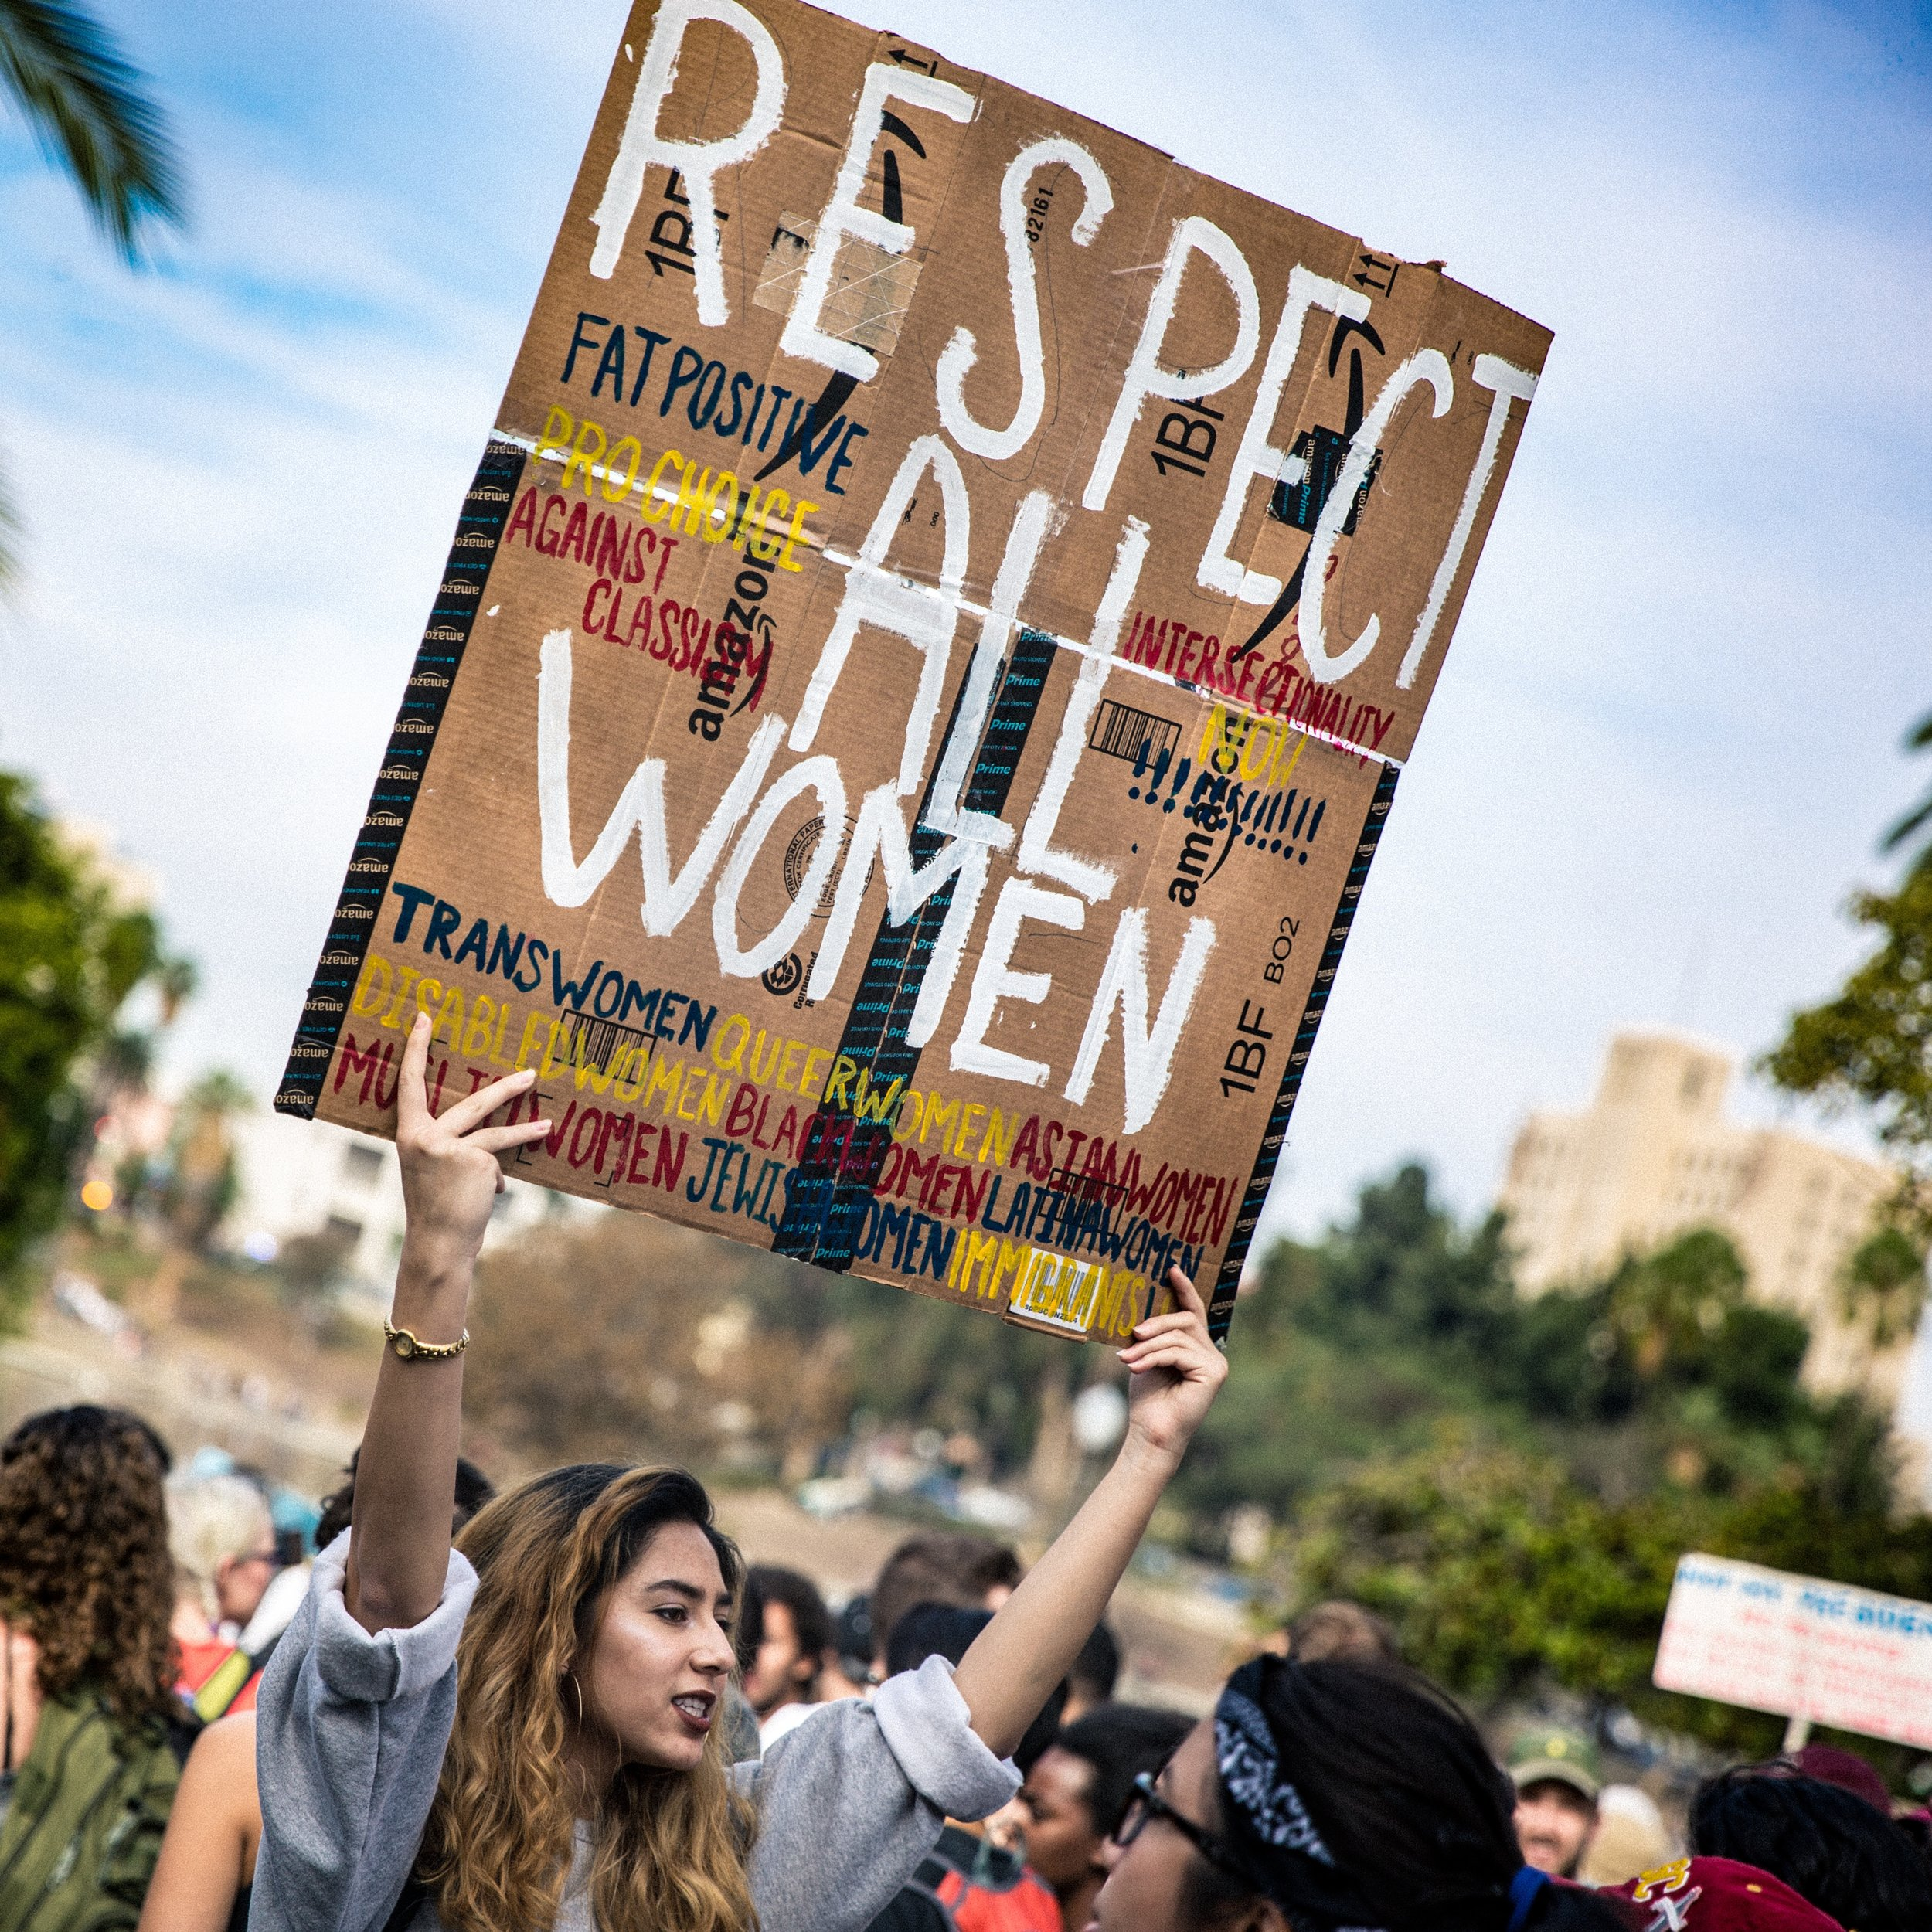 A protester holds up a sign demanding respect for all women during the post-election protest in Los Angeles, California in 2016. /  Photo by  T. Chick McClure  on  Unsplash .